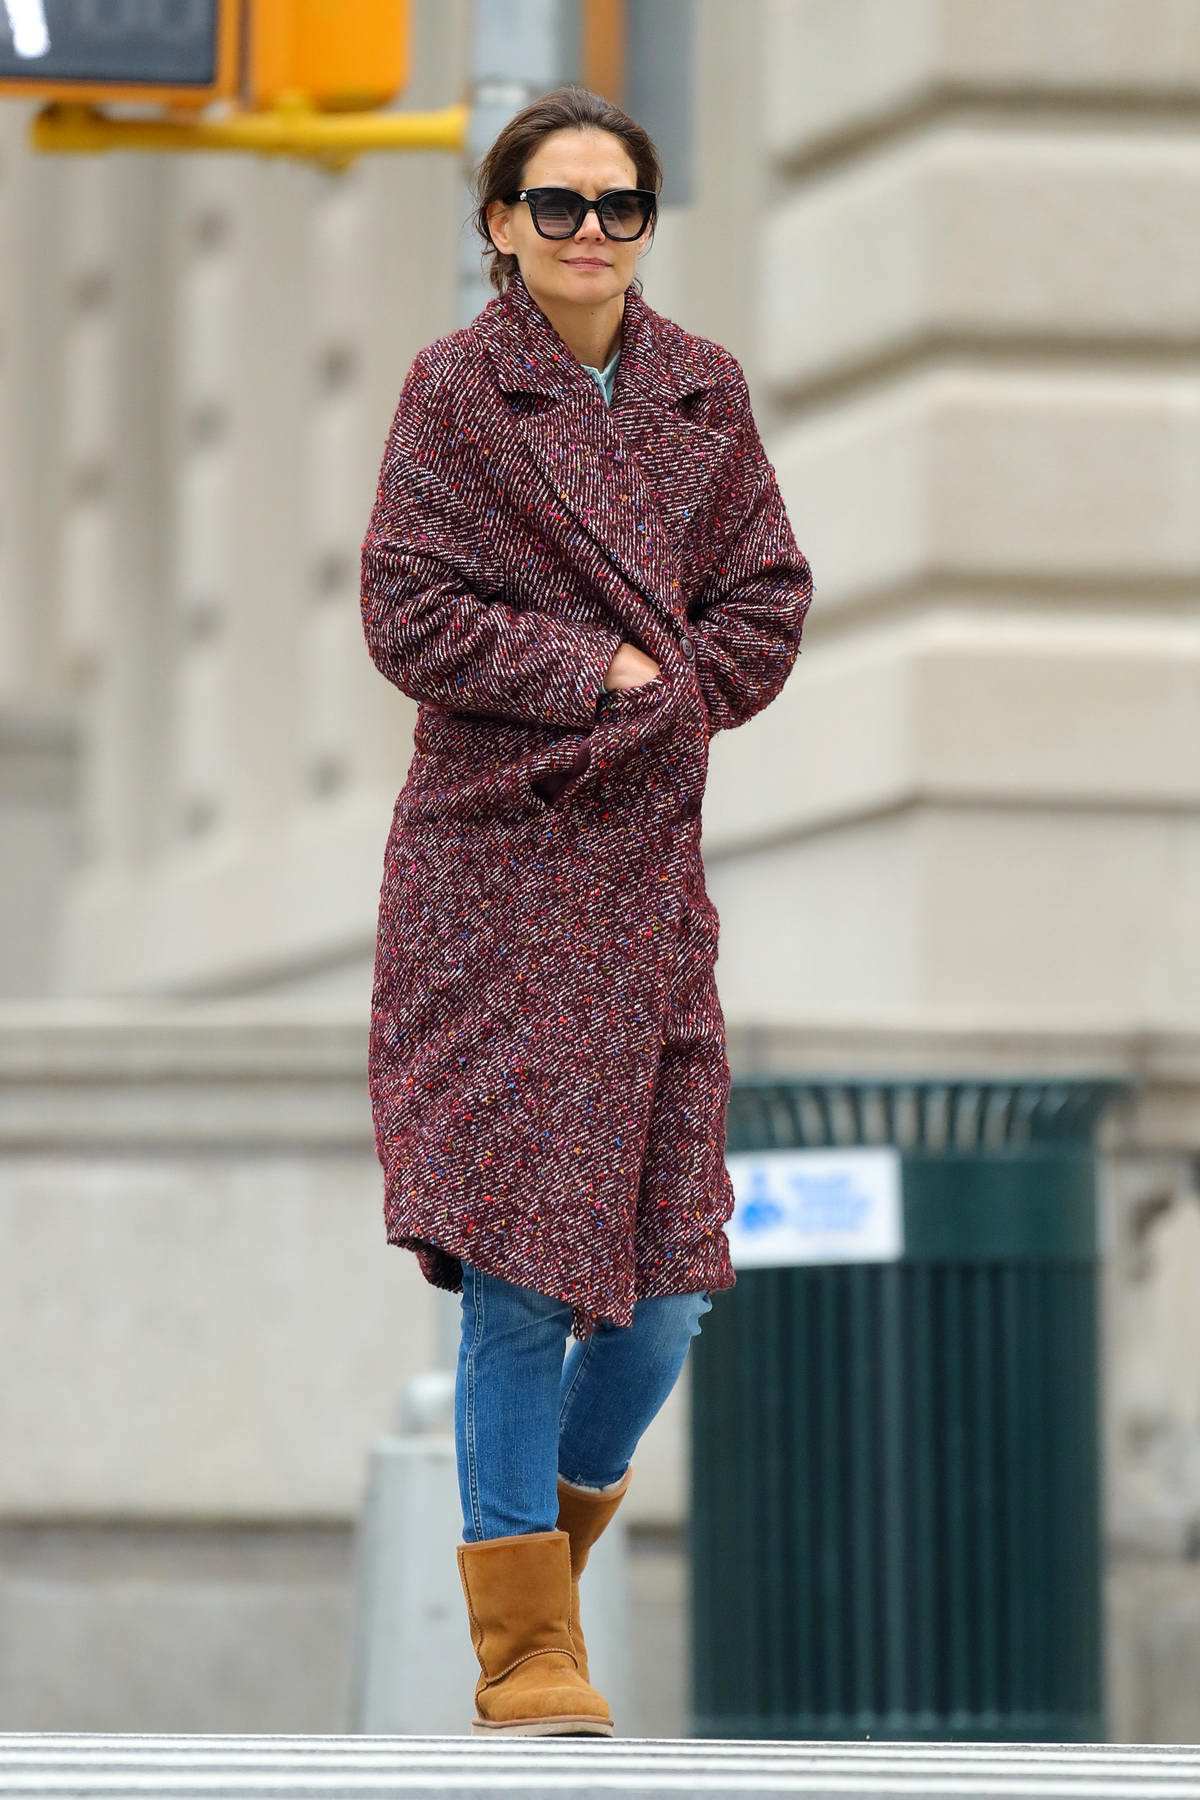 Katie Holmes wears a tweed coat and UGG boots as she steps out in New York City